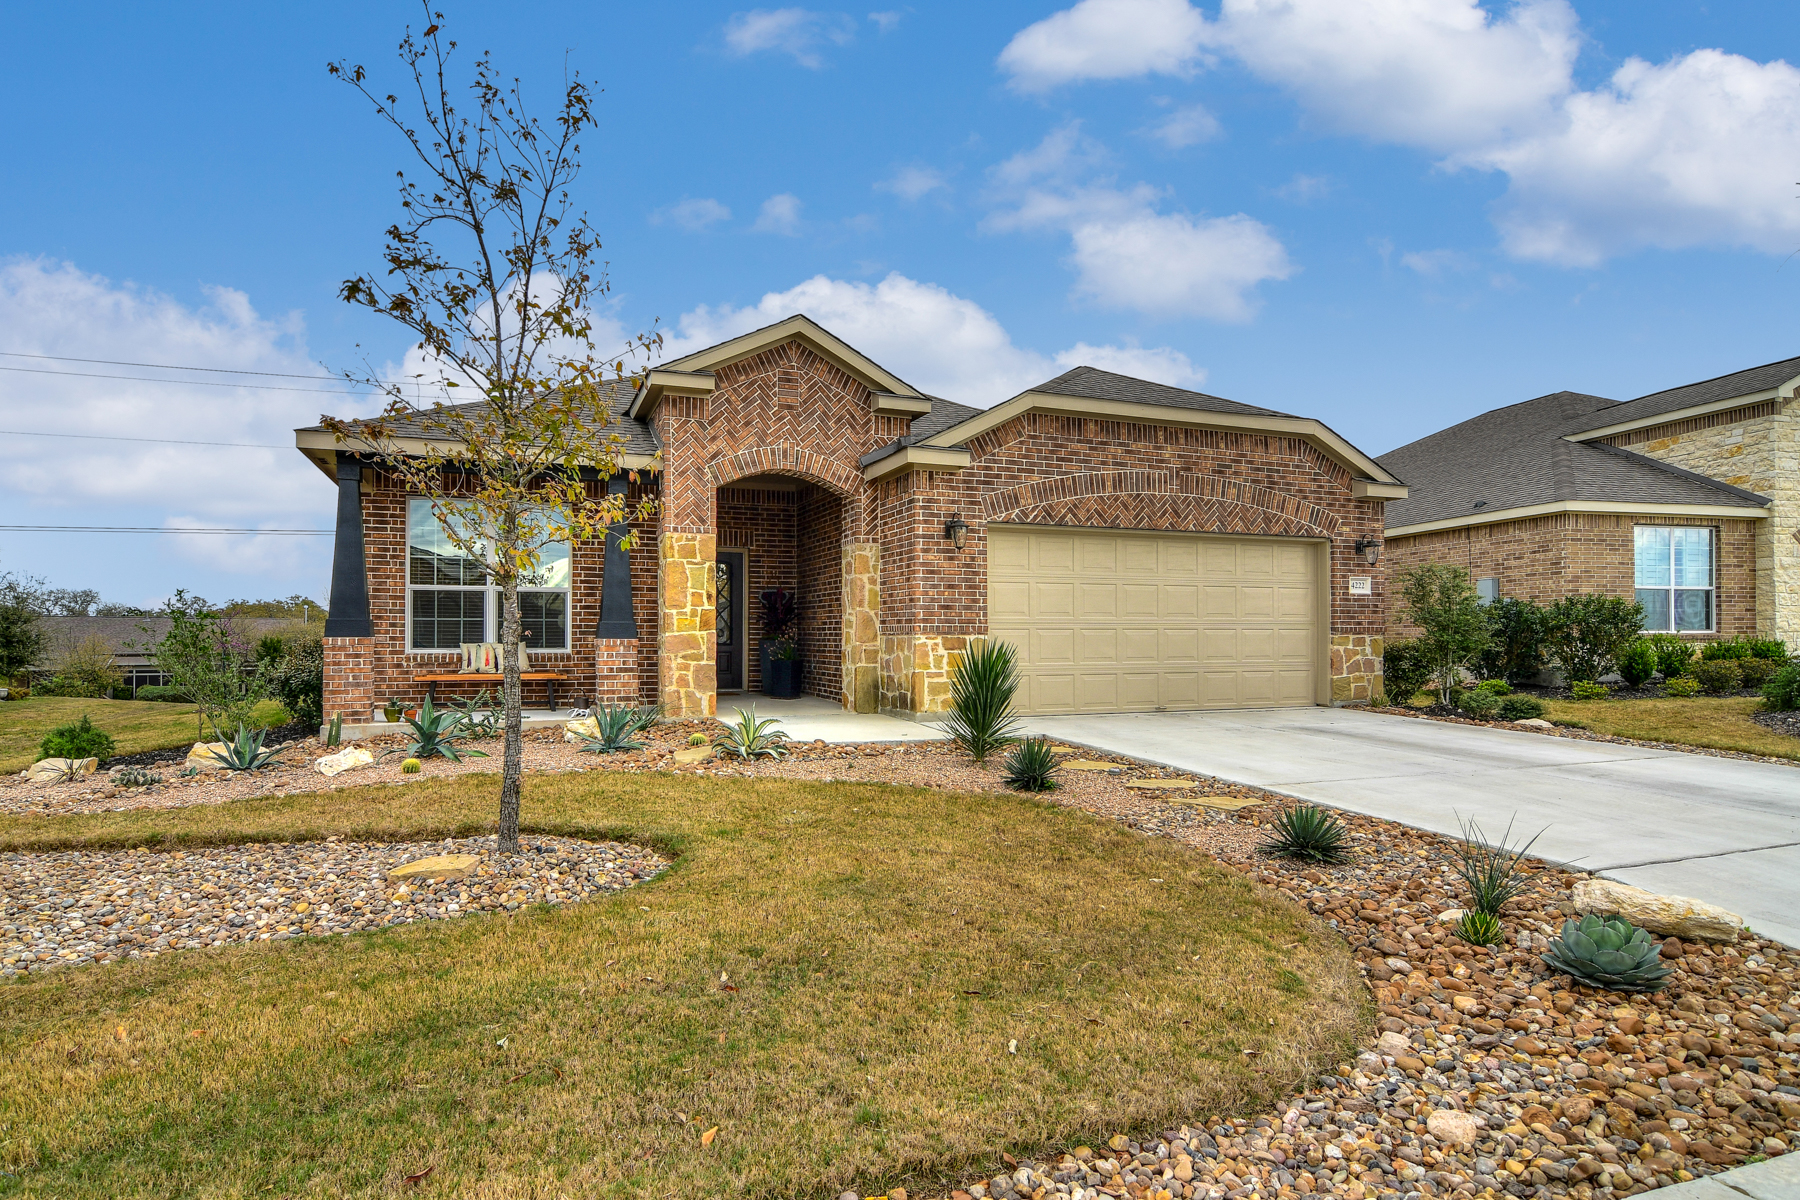 Single Family Home for Sale at Breathtaking One-Story in Hill Country Retreat 4222 Paddling Pass San Antonio, Texas 78253 United States